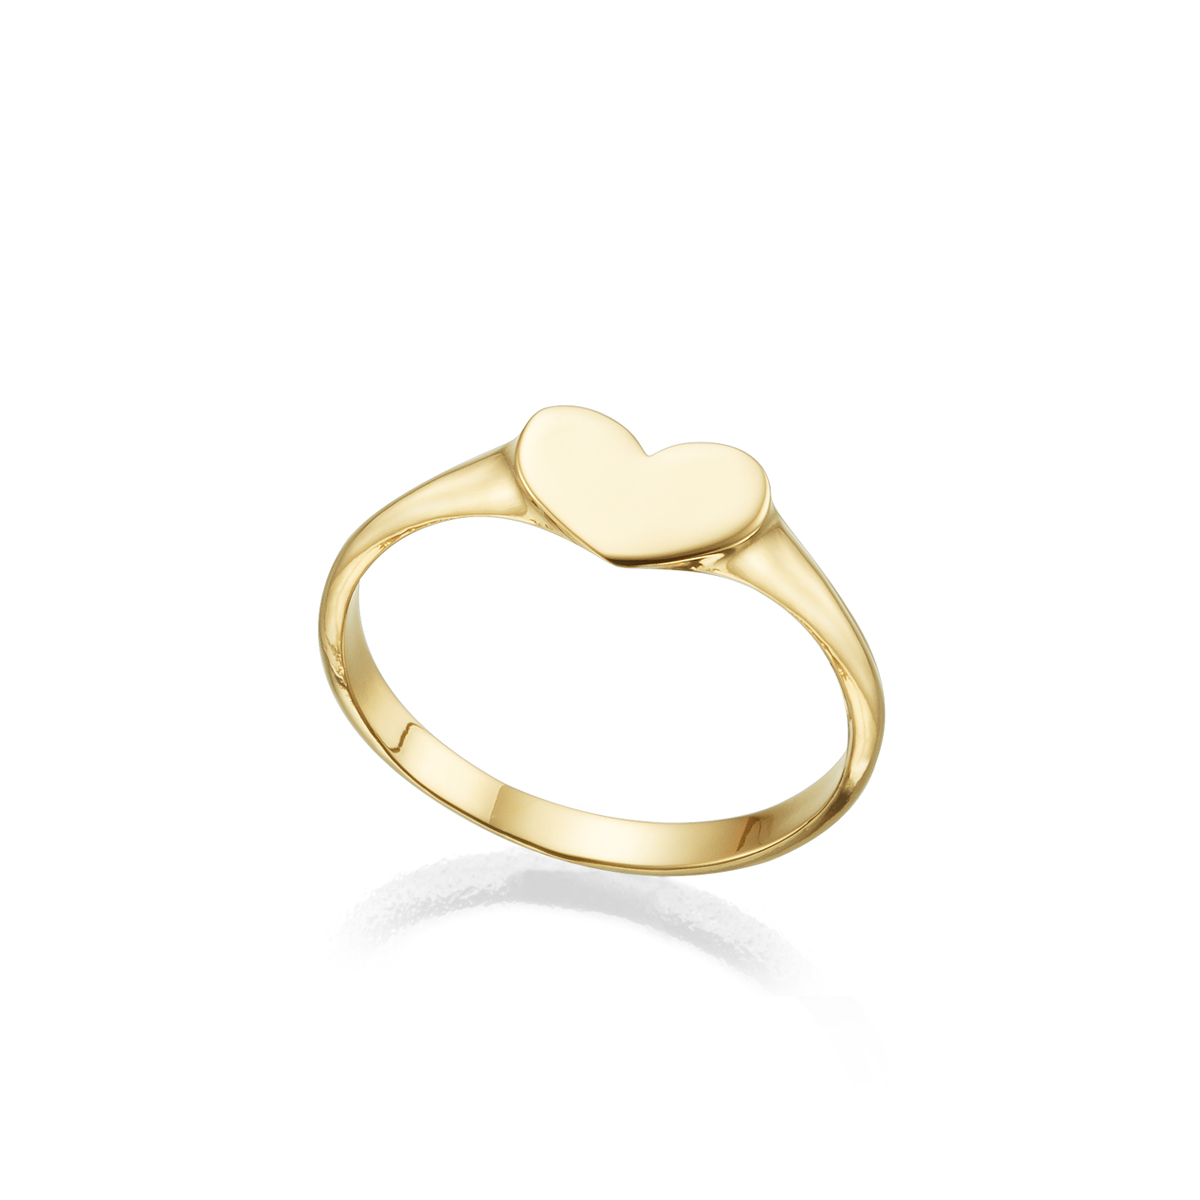 Gold Heart shaped signet Ring